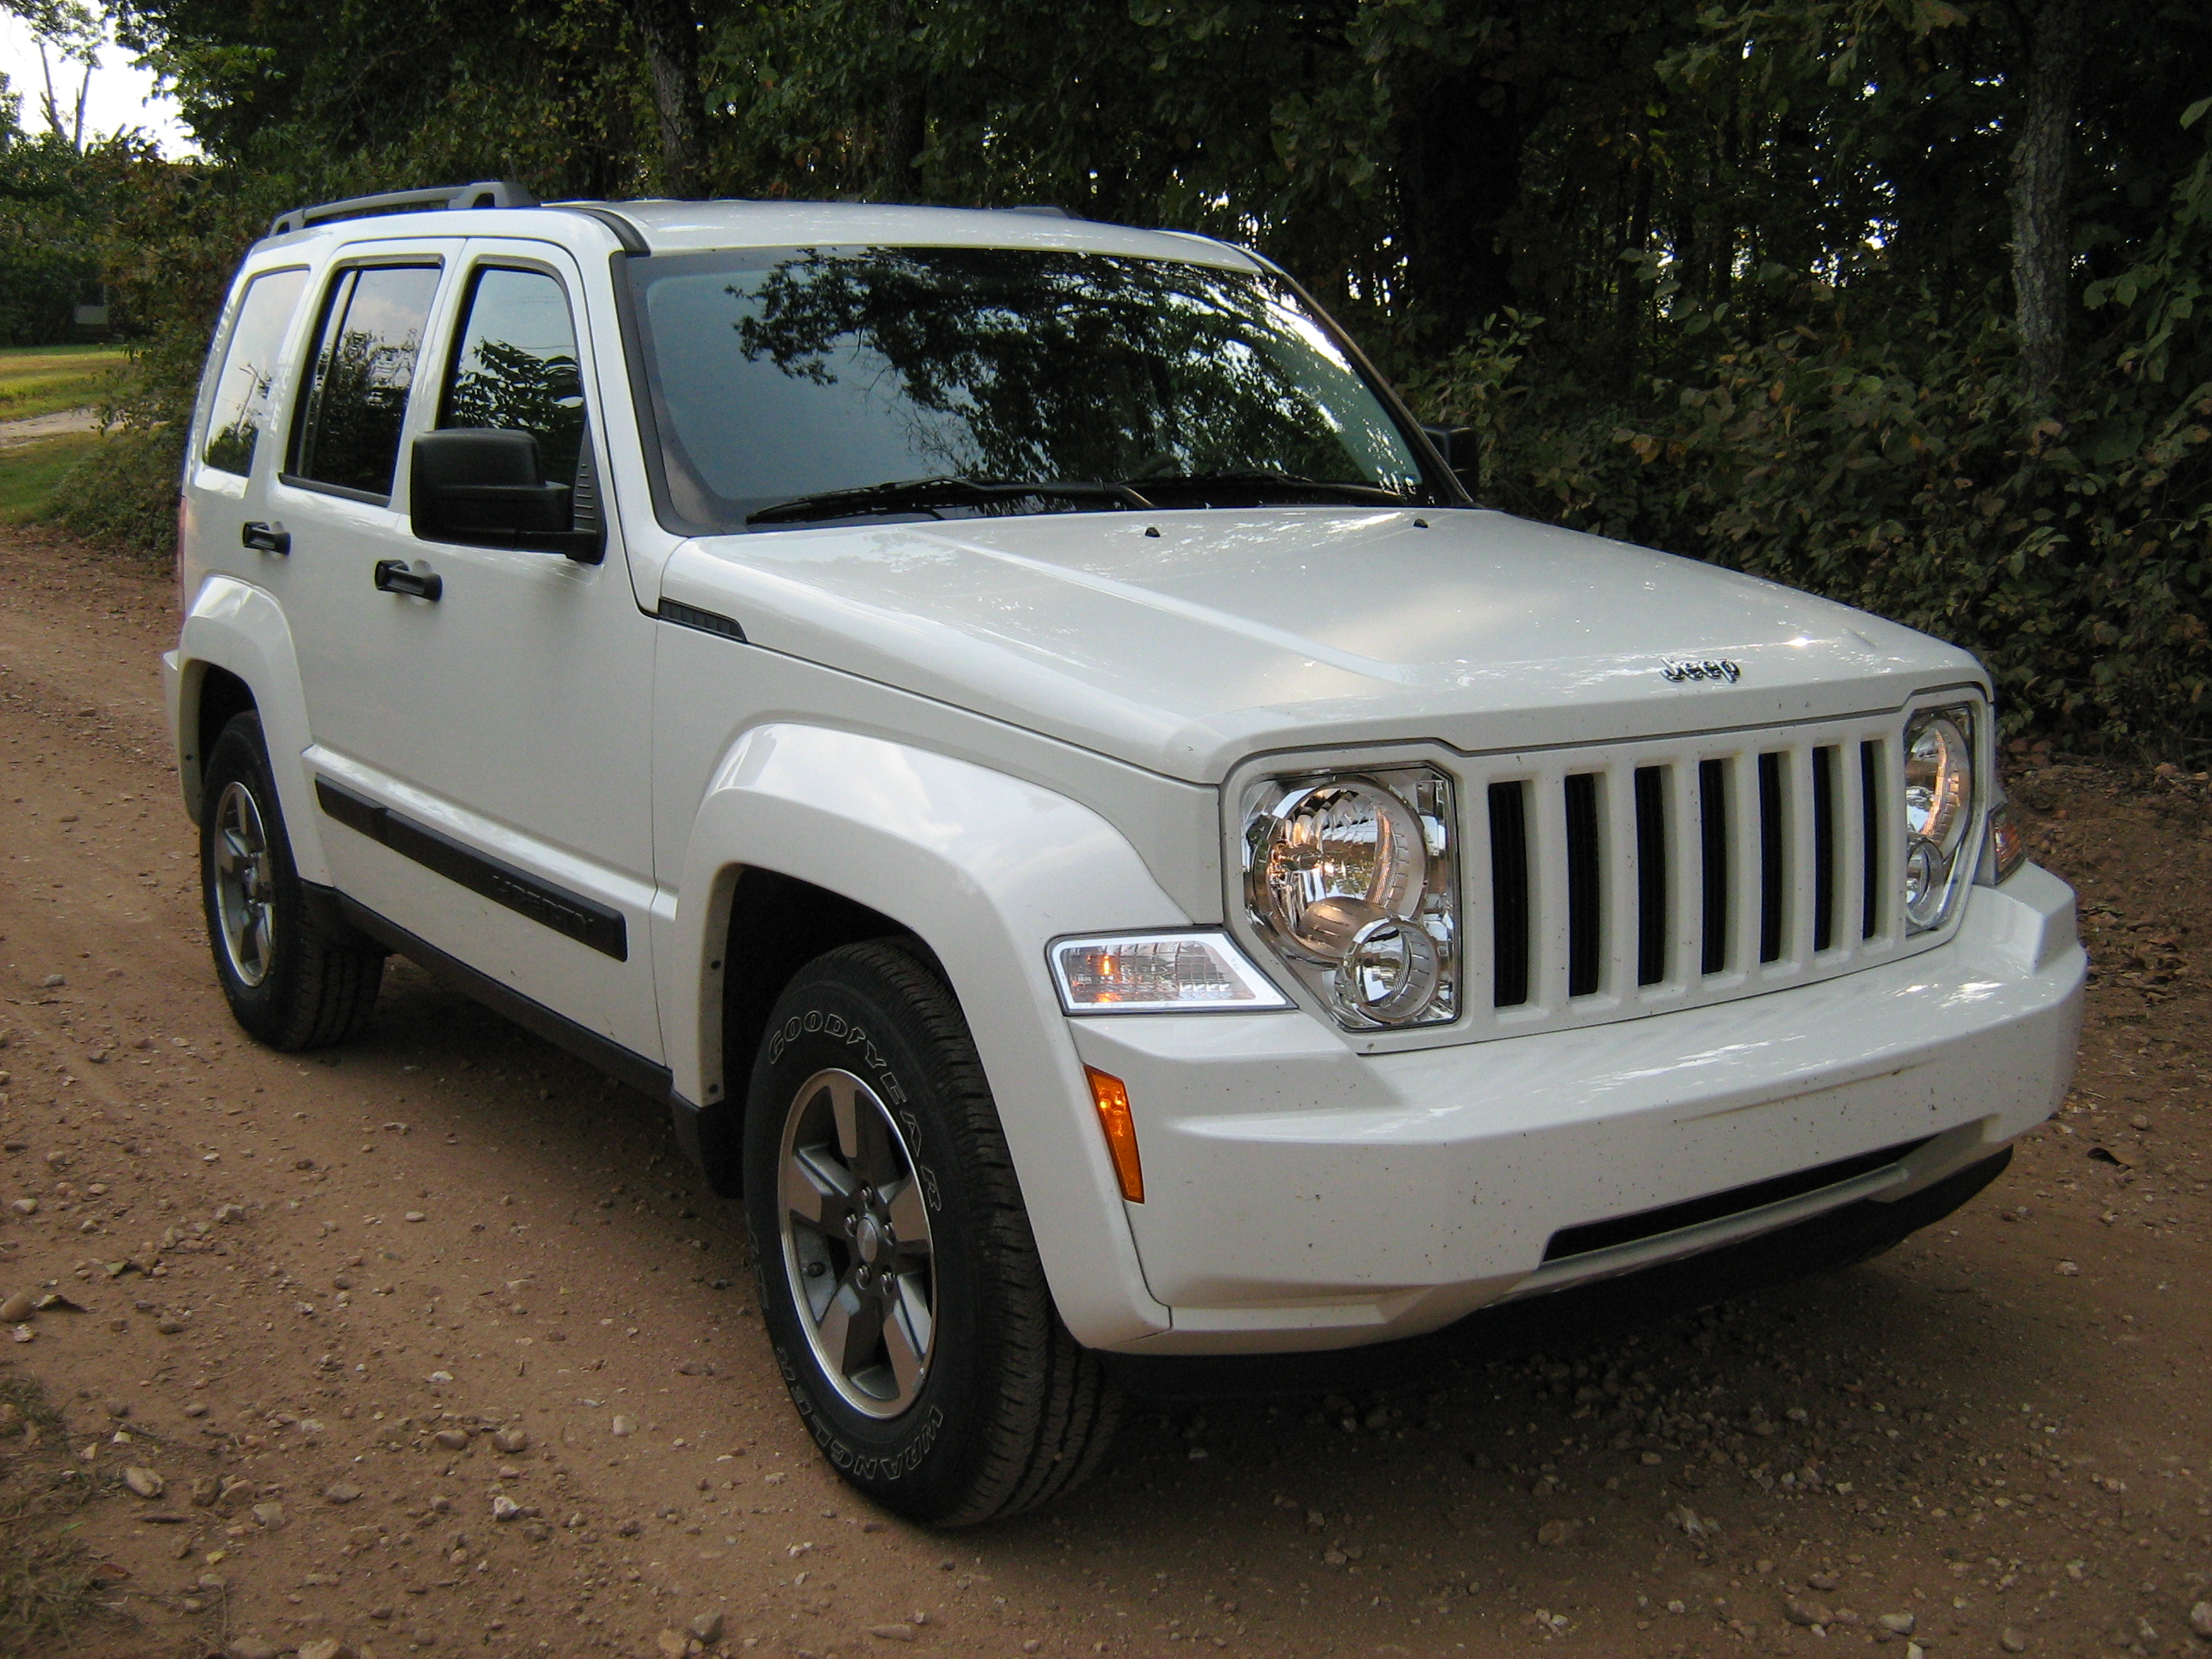 2008 Jeep Liberty Image